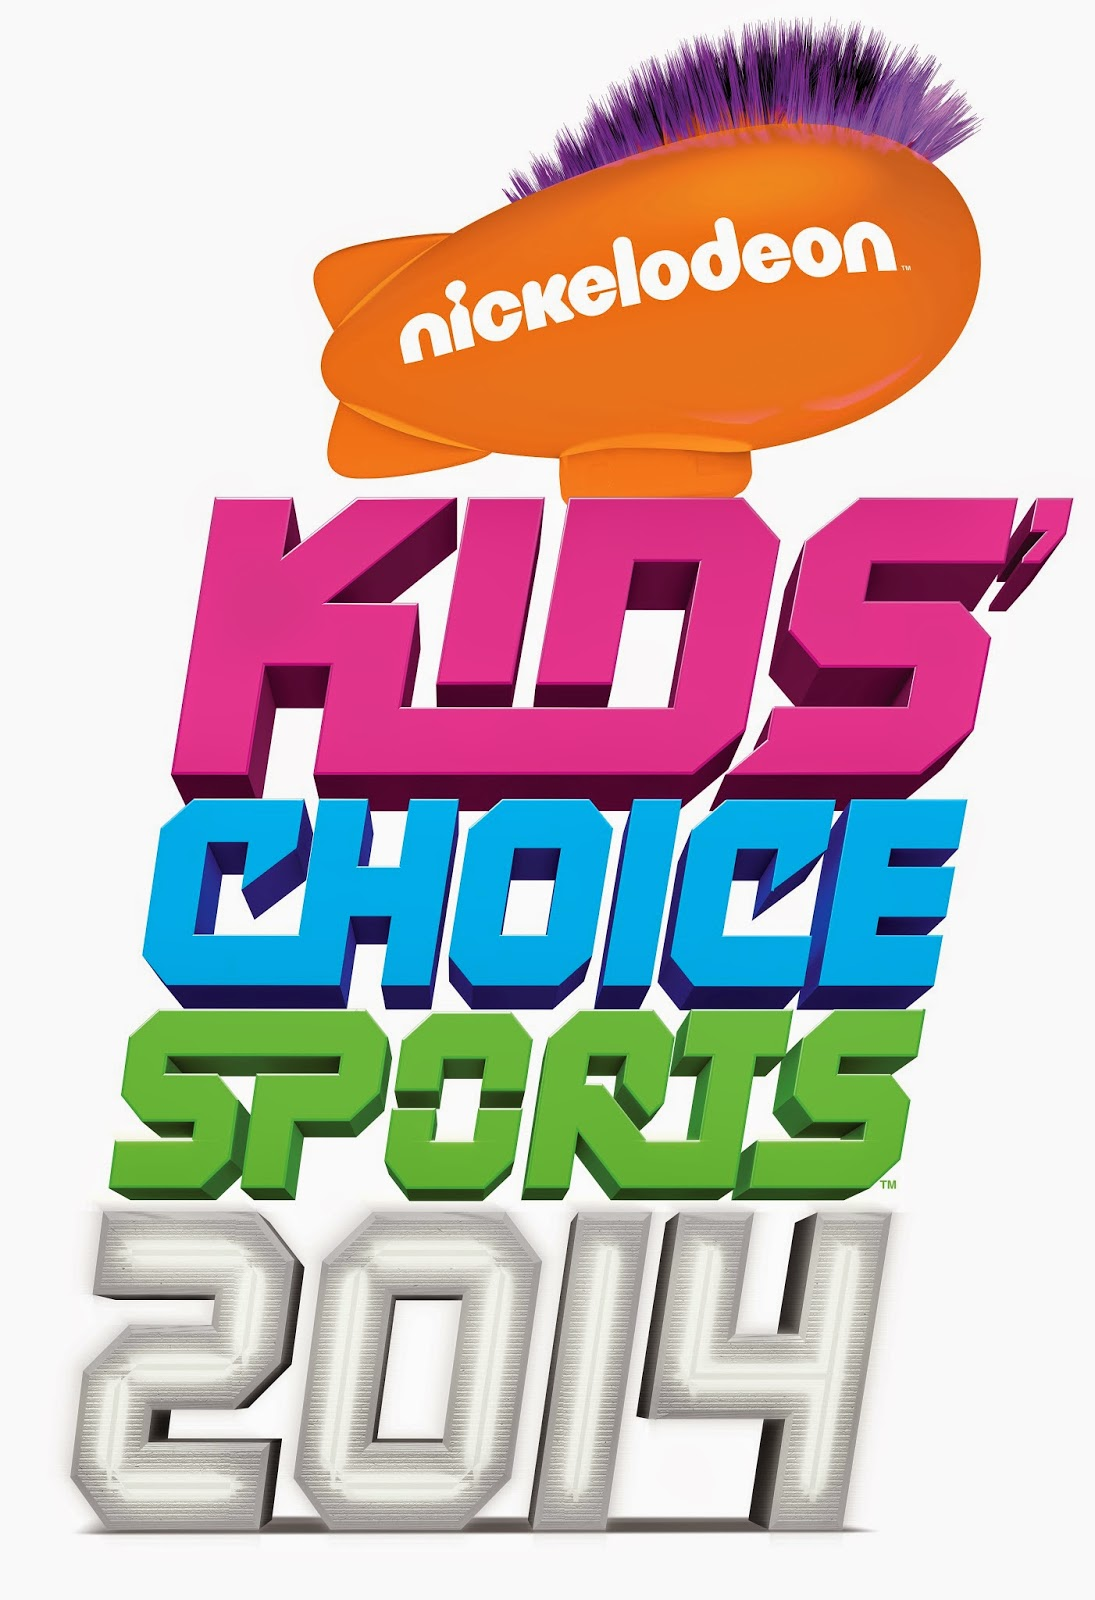 Nick Sports Vote : sports, NickALive!:, Dwyane, Wade,, Howard,, Serena, Williams,, Kevin, Durant,, Gabby, Douglas,, Victor, Carmelo, Anthony,, Among, Sports, Superstars, Winning, Honors, Nickelodeon's, Inaugural,